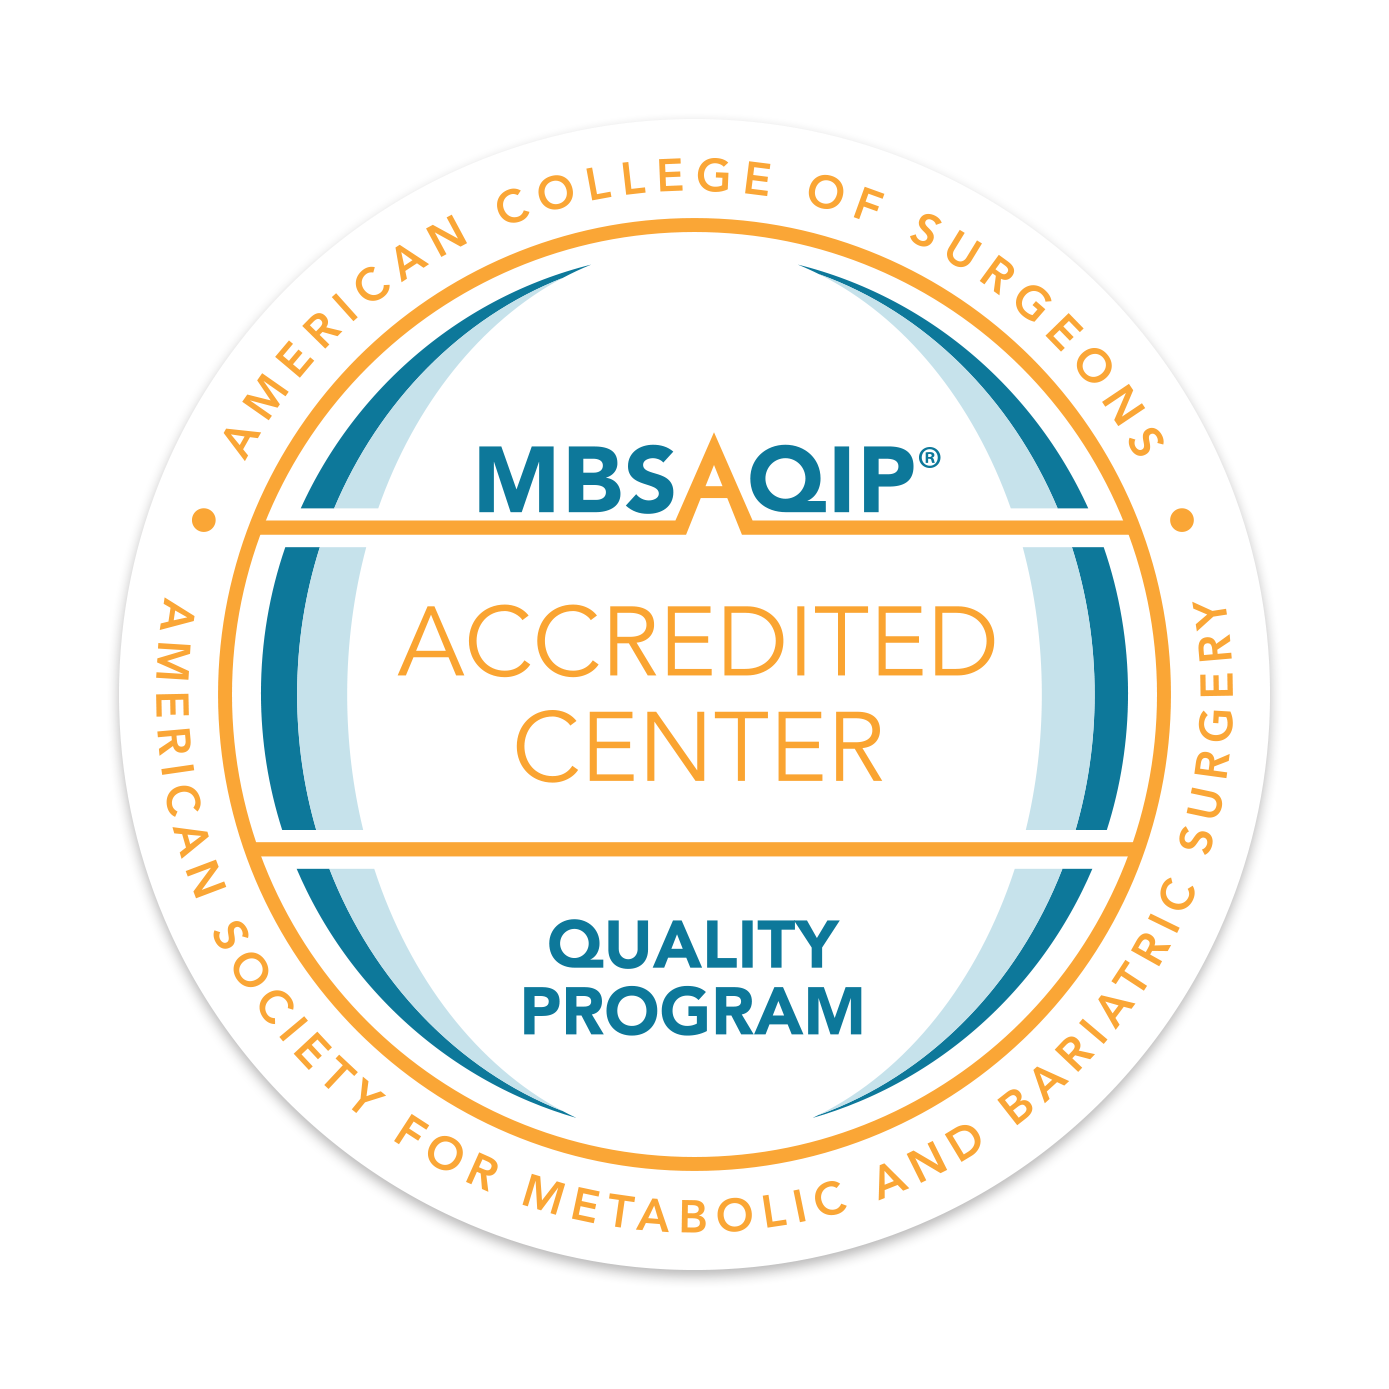 Accredited Center - Quality Program